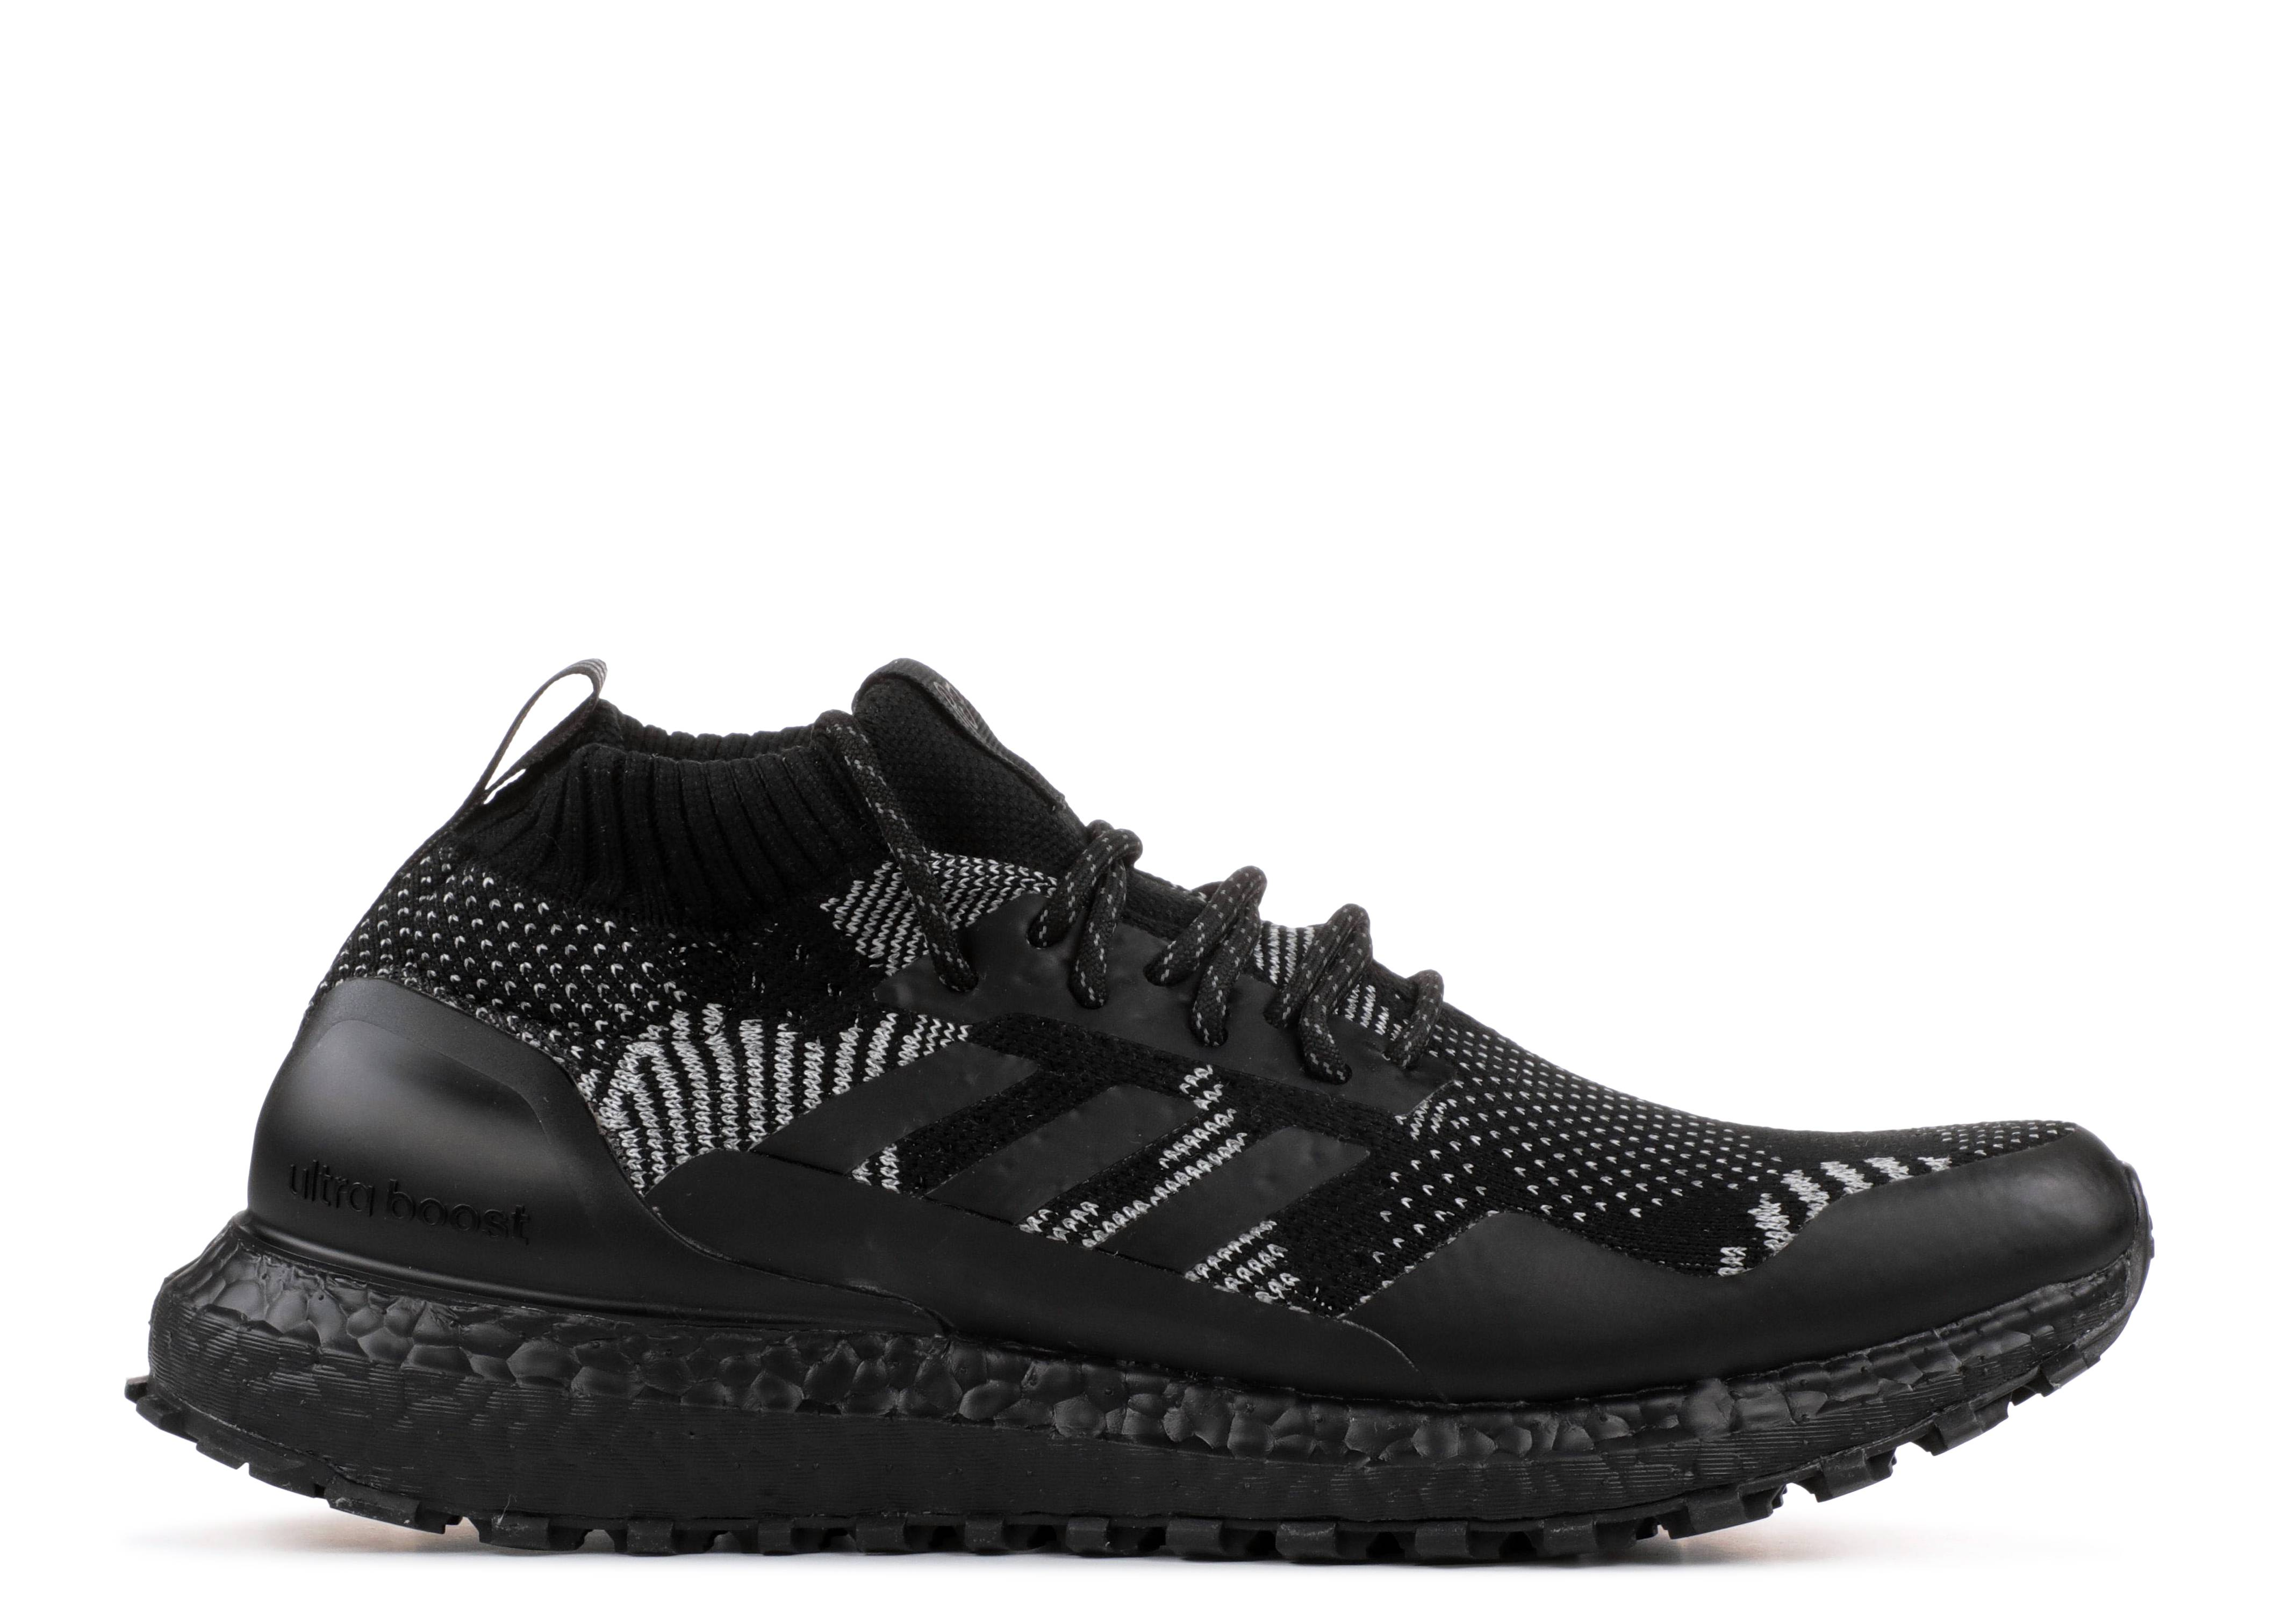 promo code 8c22d 9c82c ultraboost mid tr kith